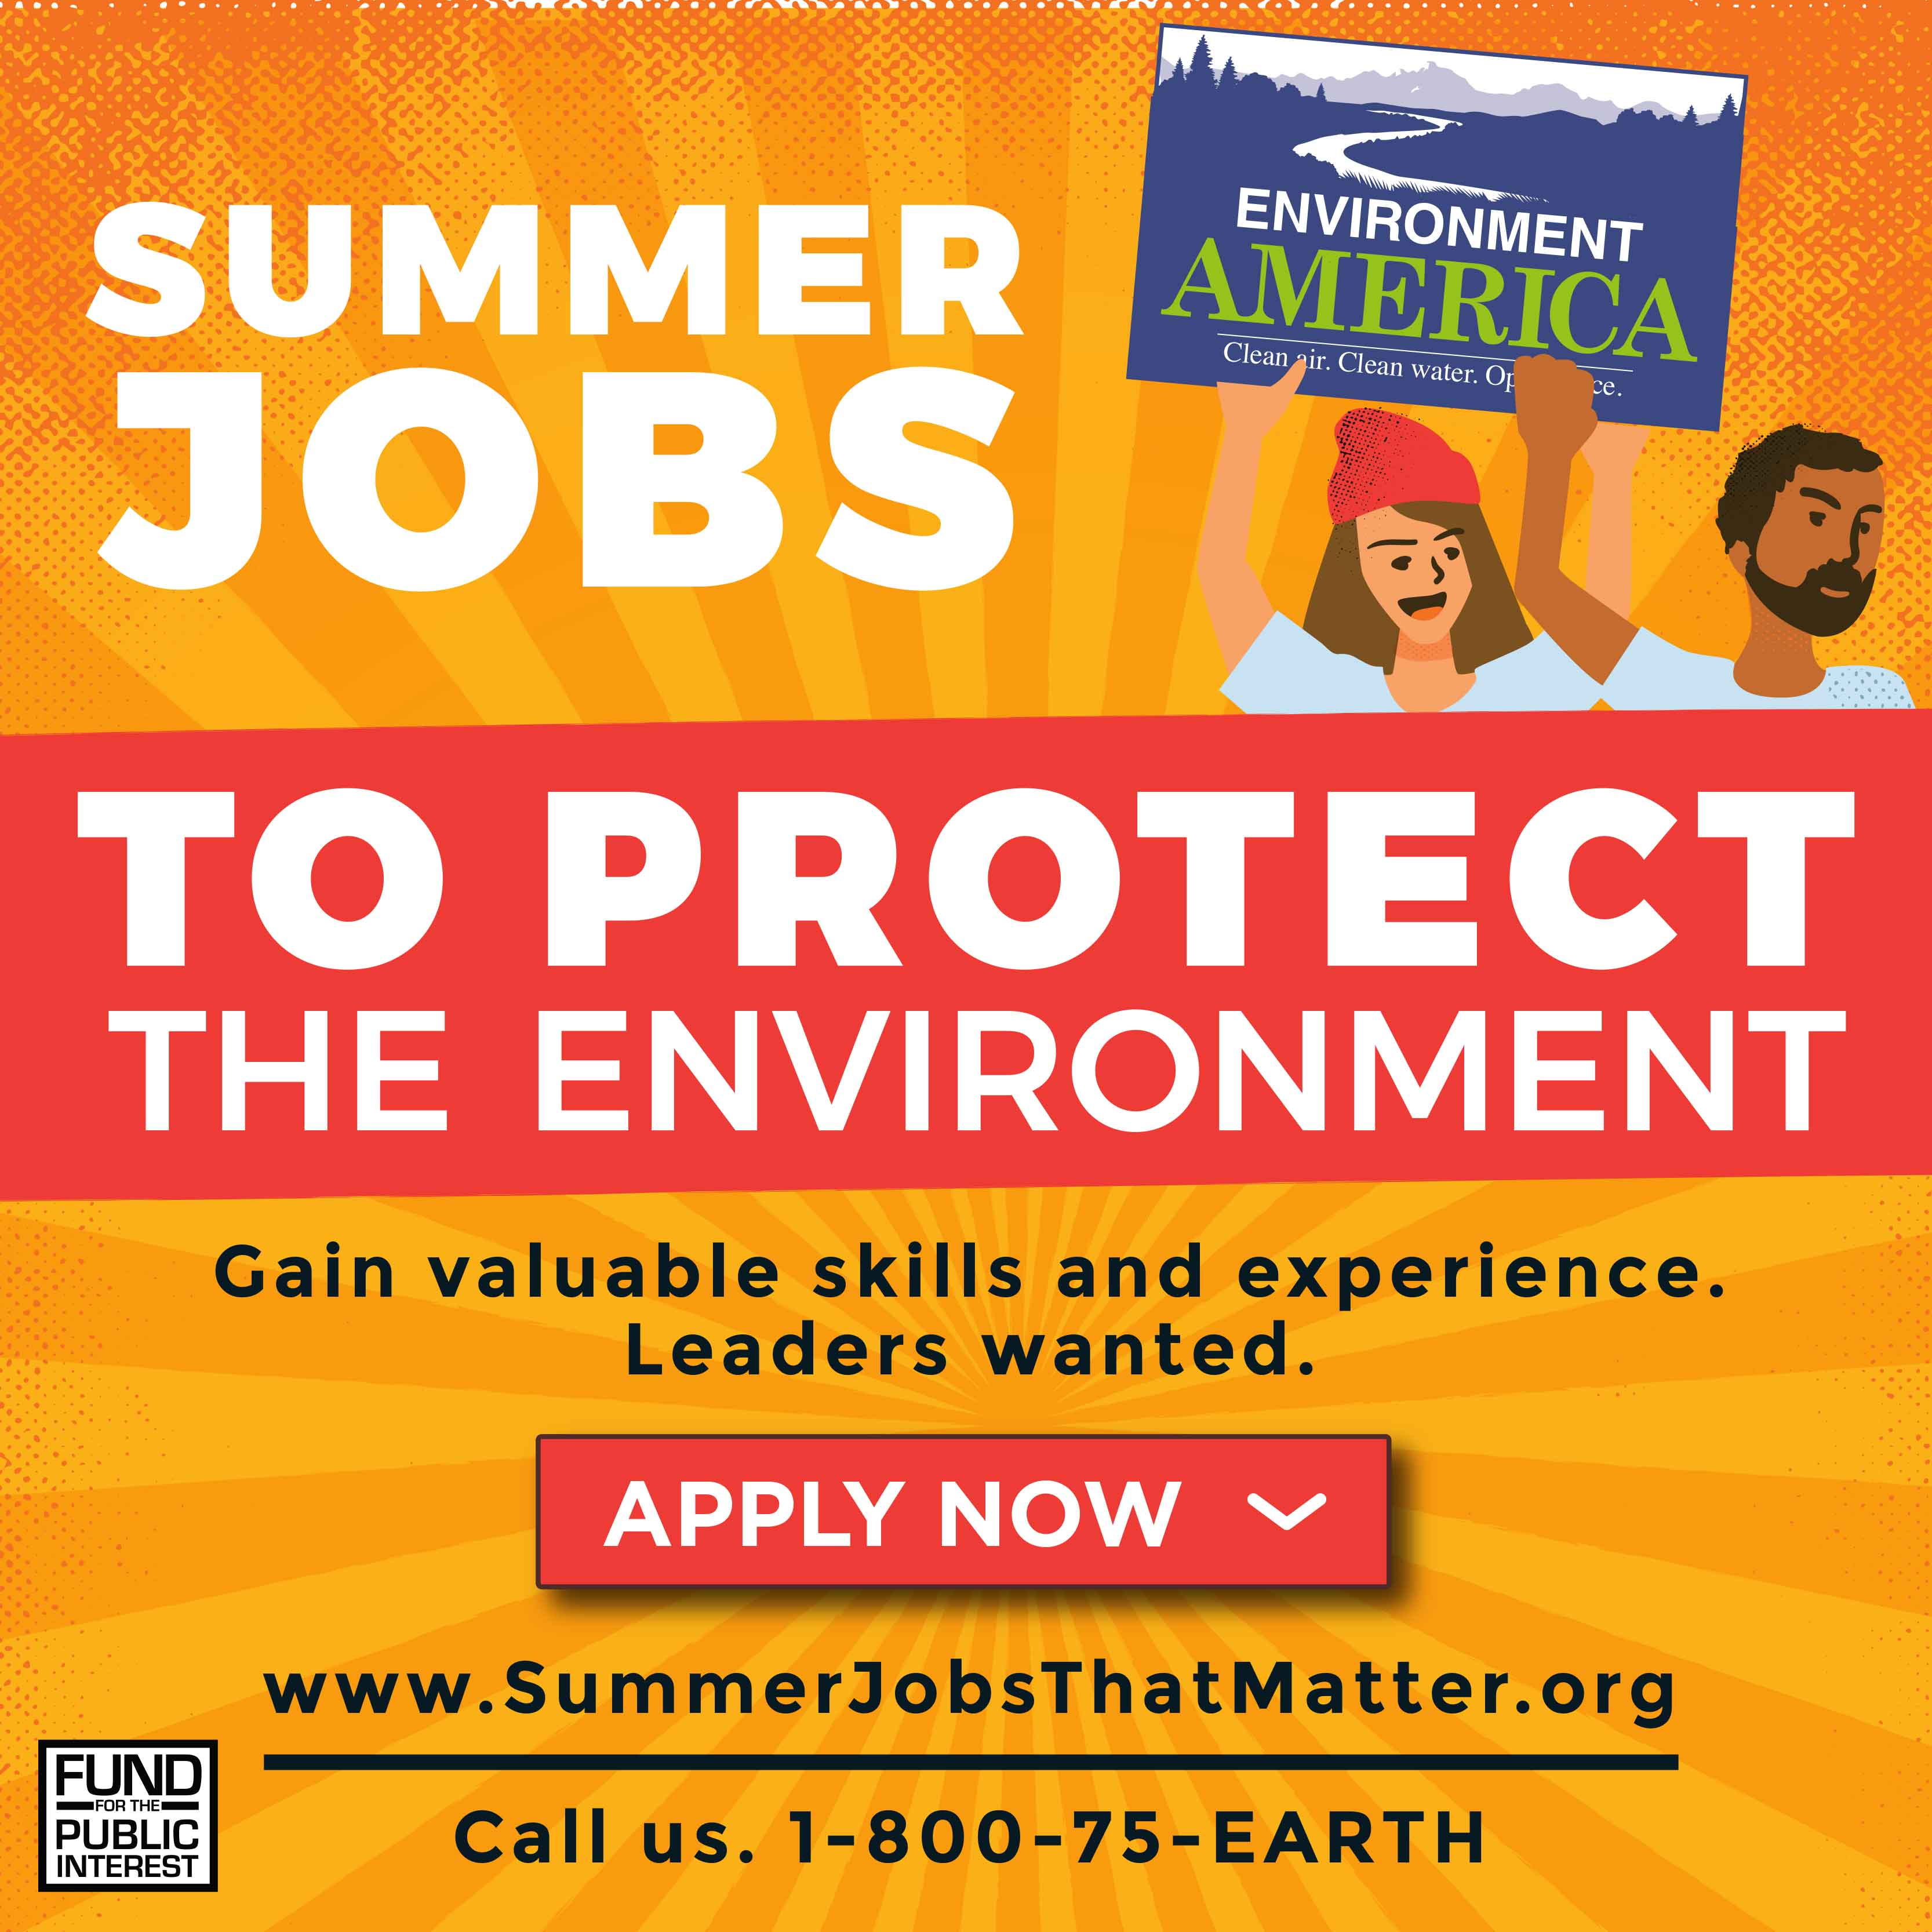 SUMMER JOBS TO PROTECT THE ENVIRONMENT